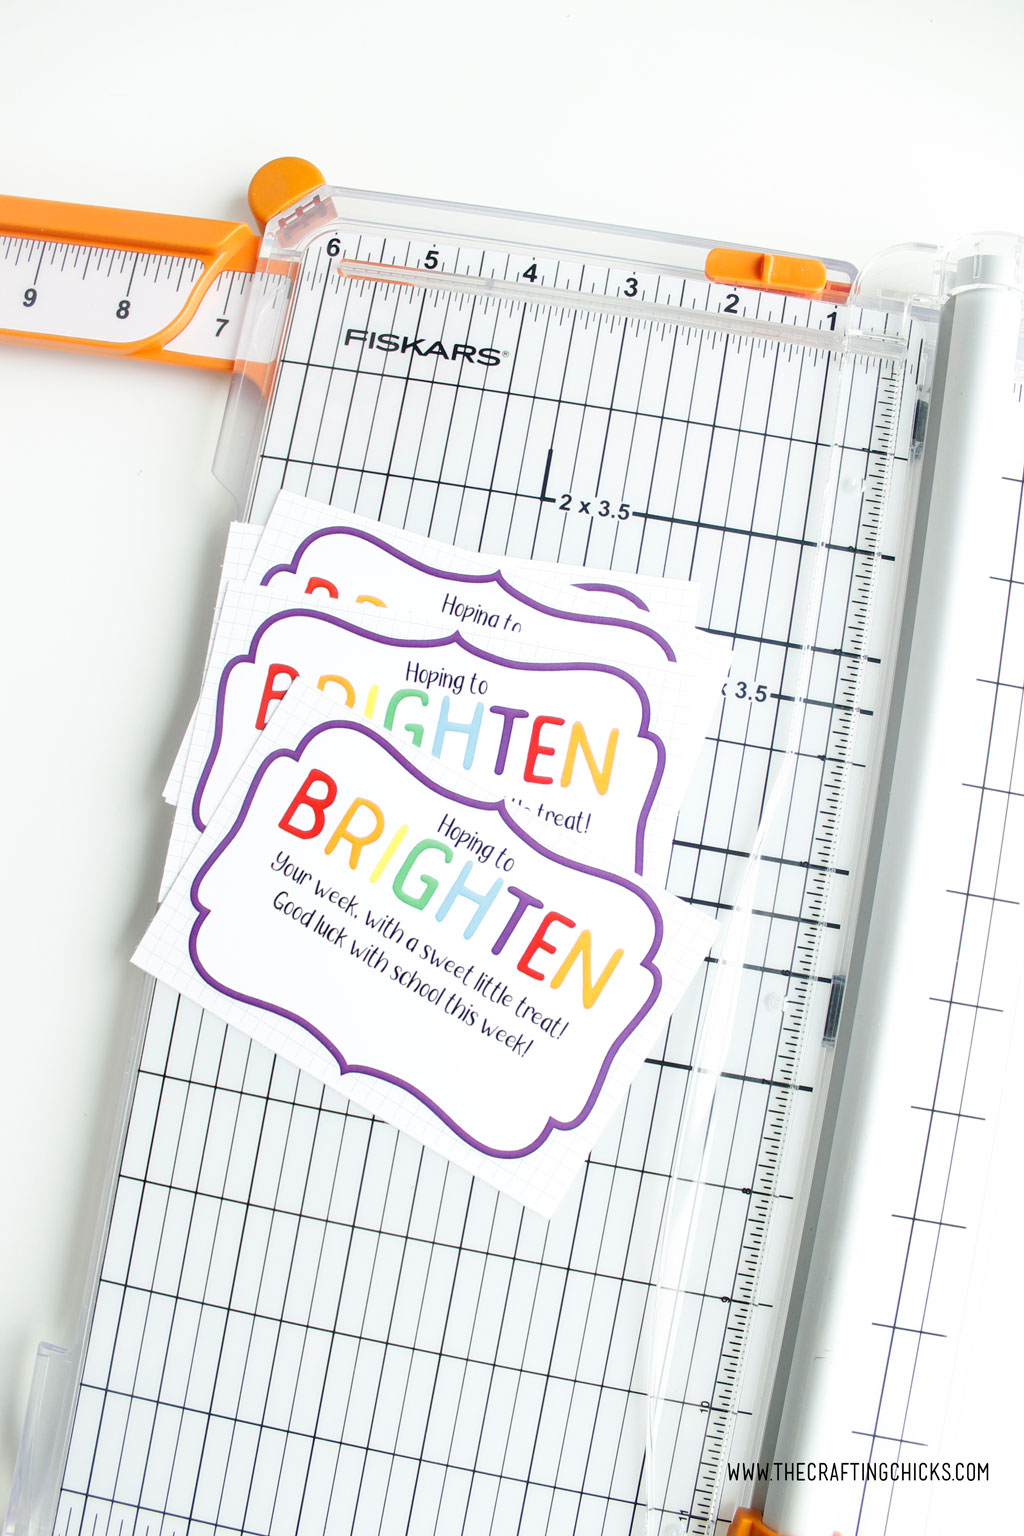 Brighten your day printable gift tags cut into squares using a paper trimmer